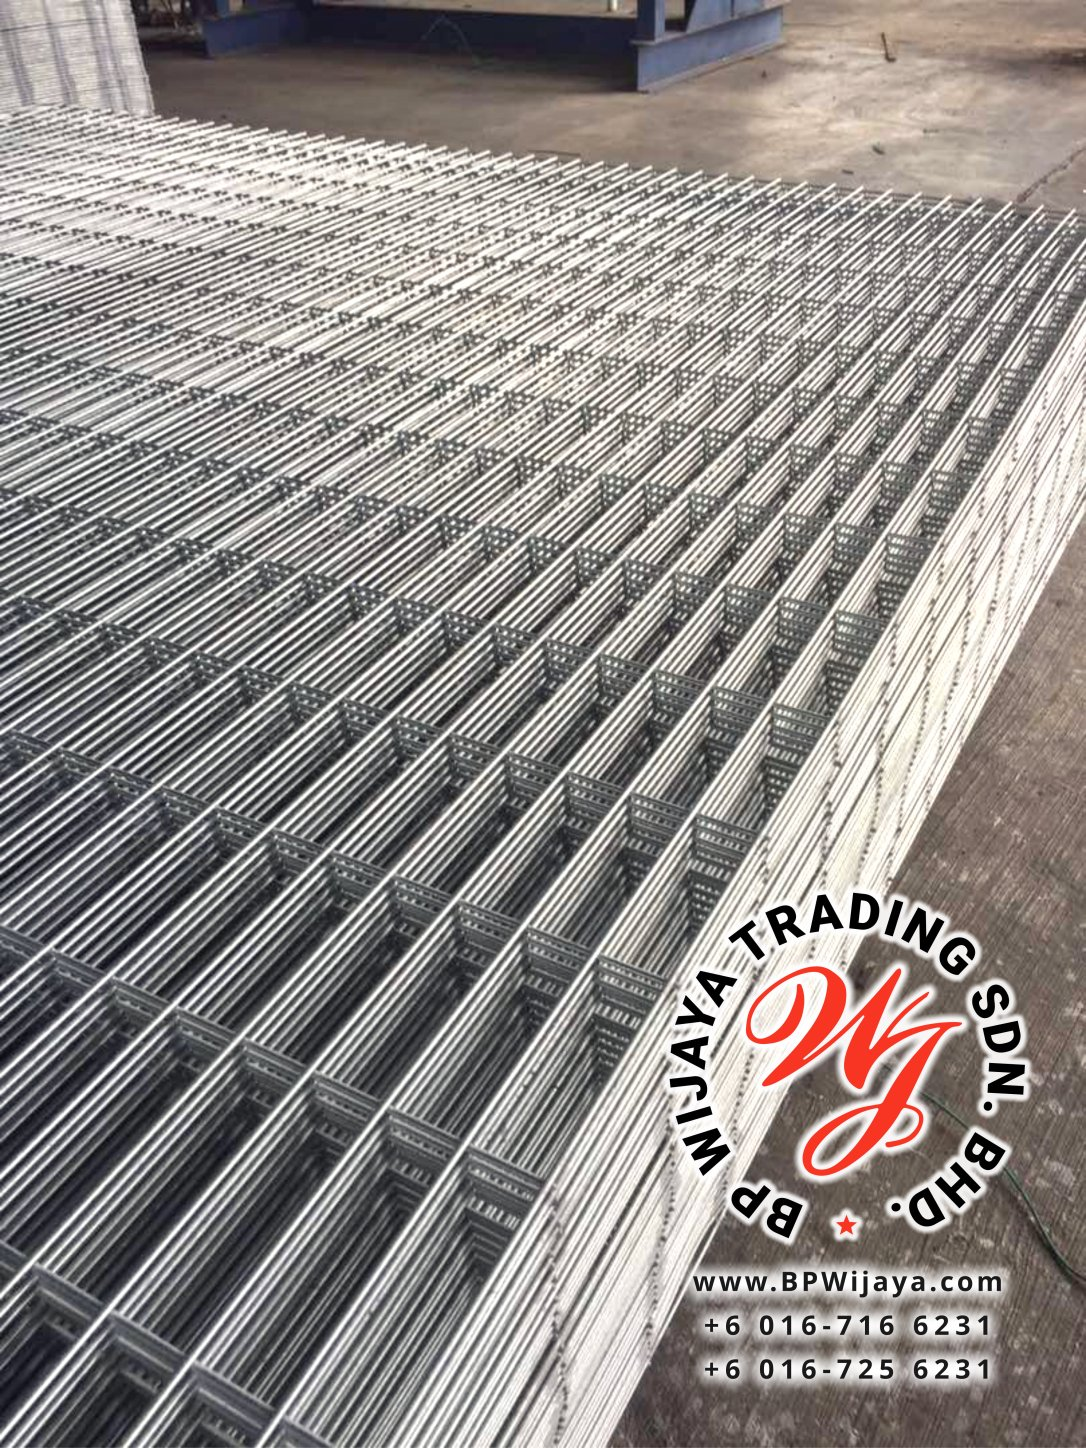 BP Wijaya Trading Sdn Bhd Malaysia manufacturer Distributor safety fences building materials Anti Climb Fence ACF 25 Mesh Wire Fence ACF Fence BRC from Johor Batu Pahat B03